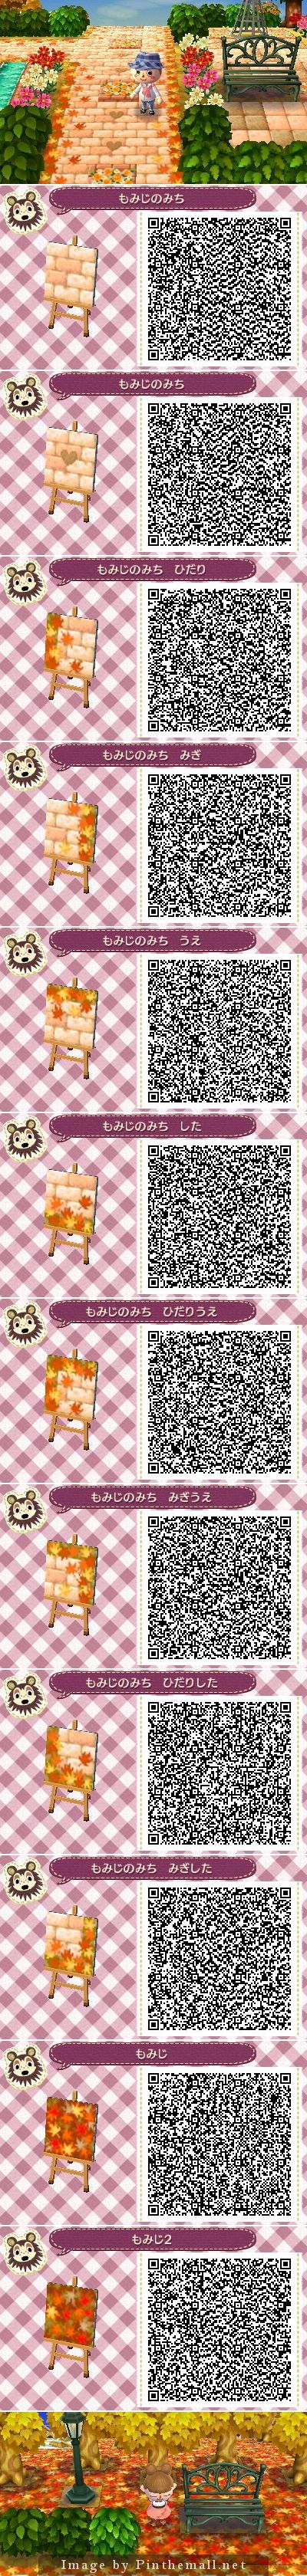 Autumn leaves pathway qr codes outfits qr codes for for Acnl boden qr